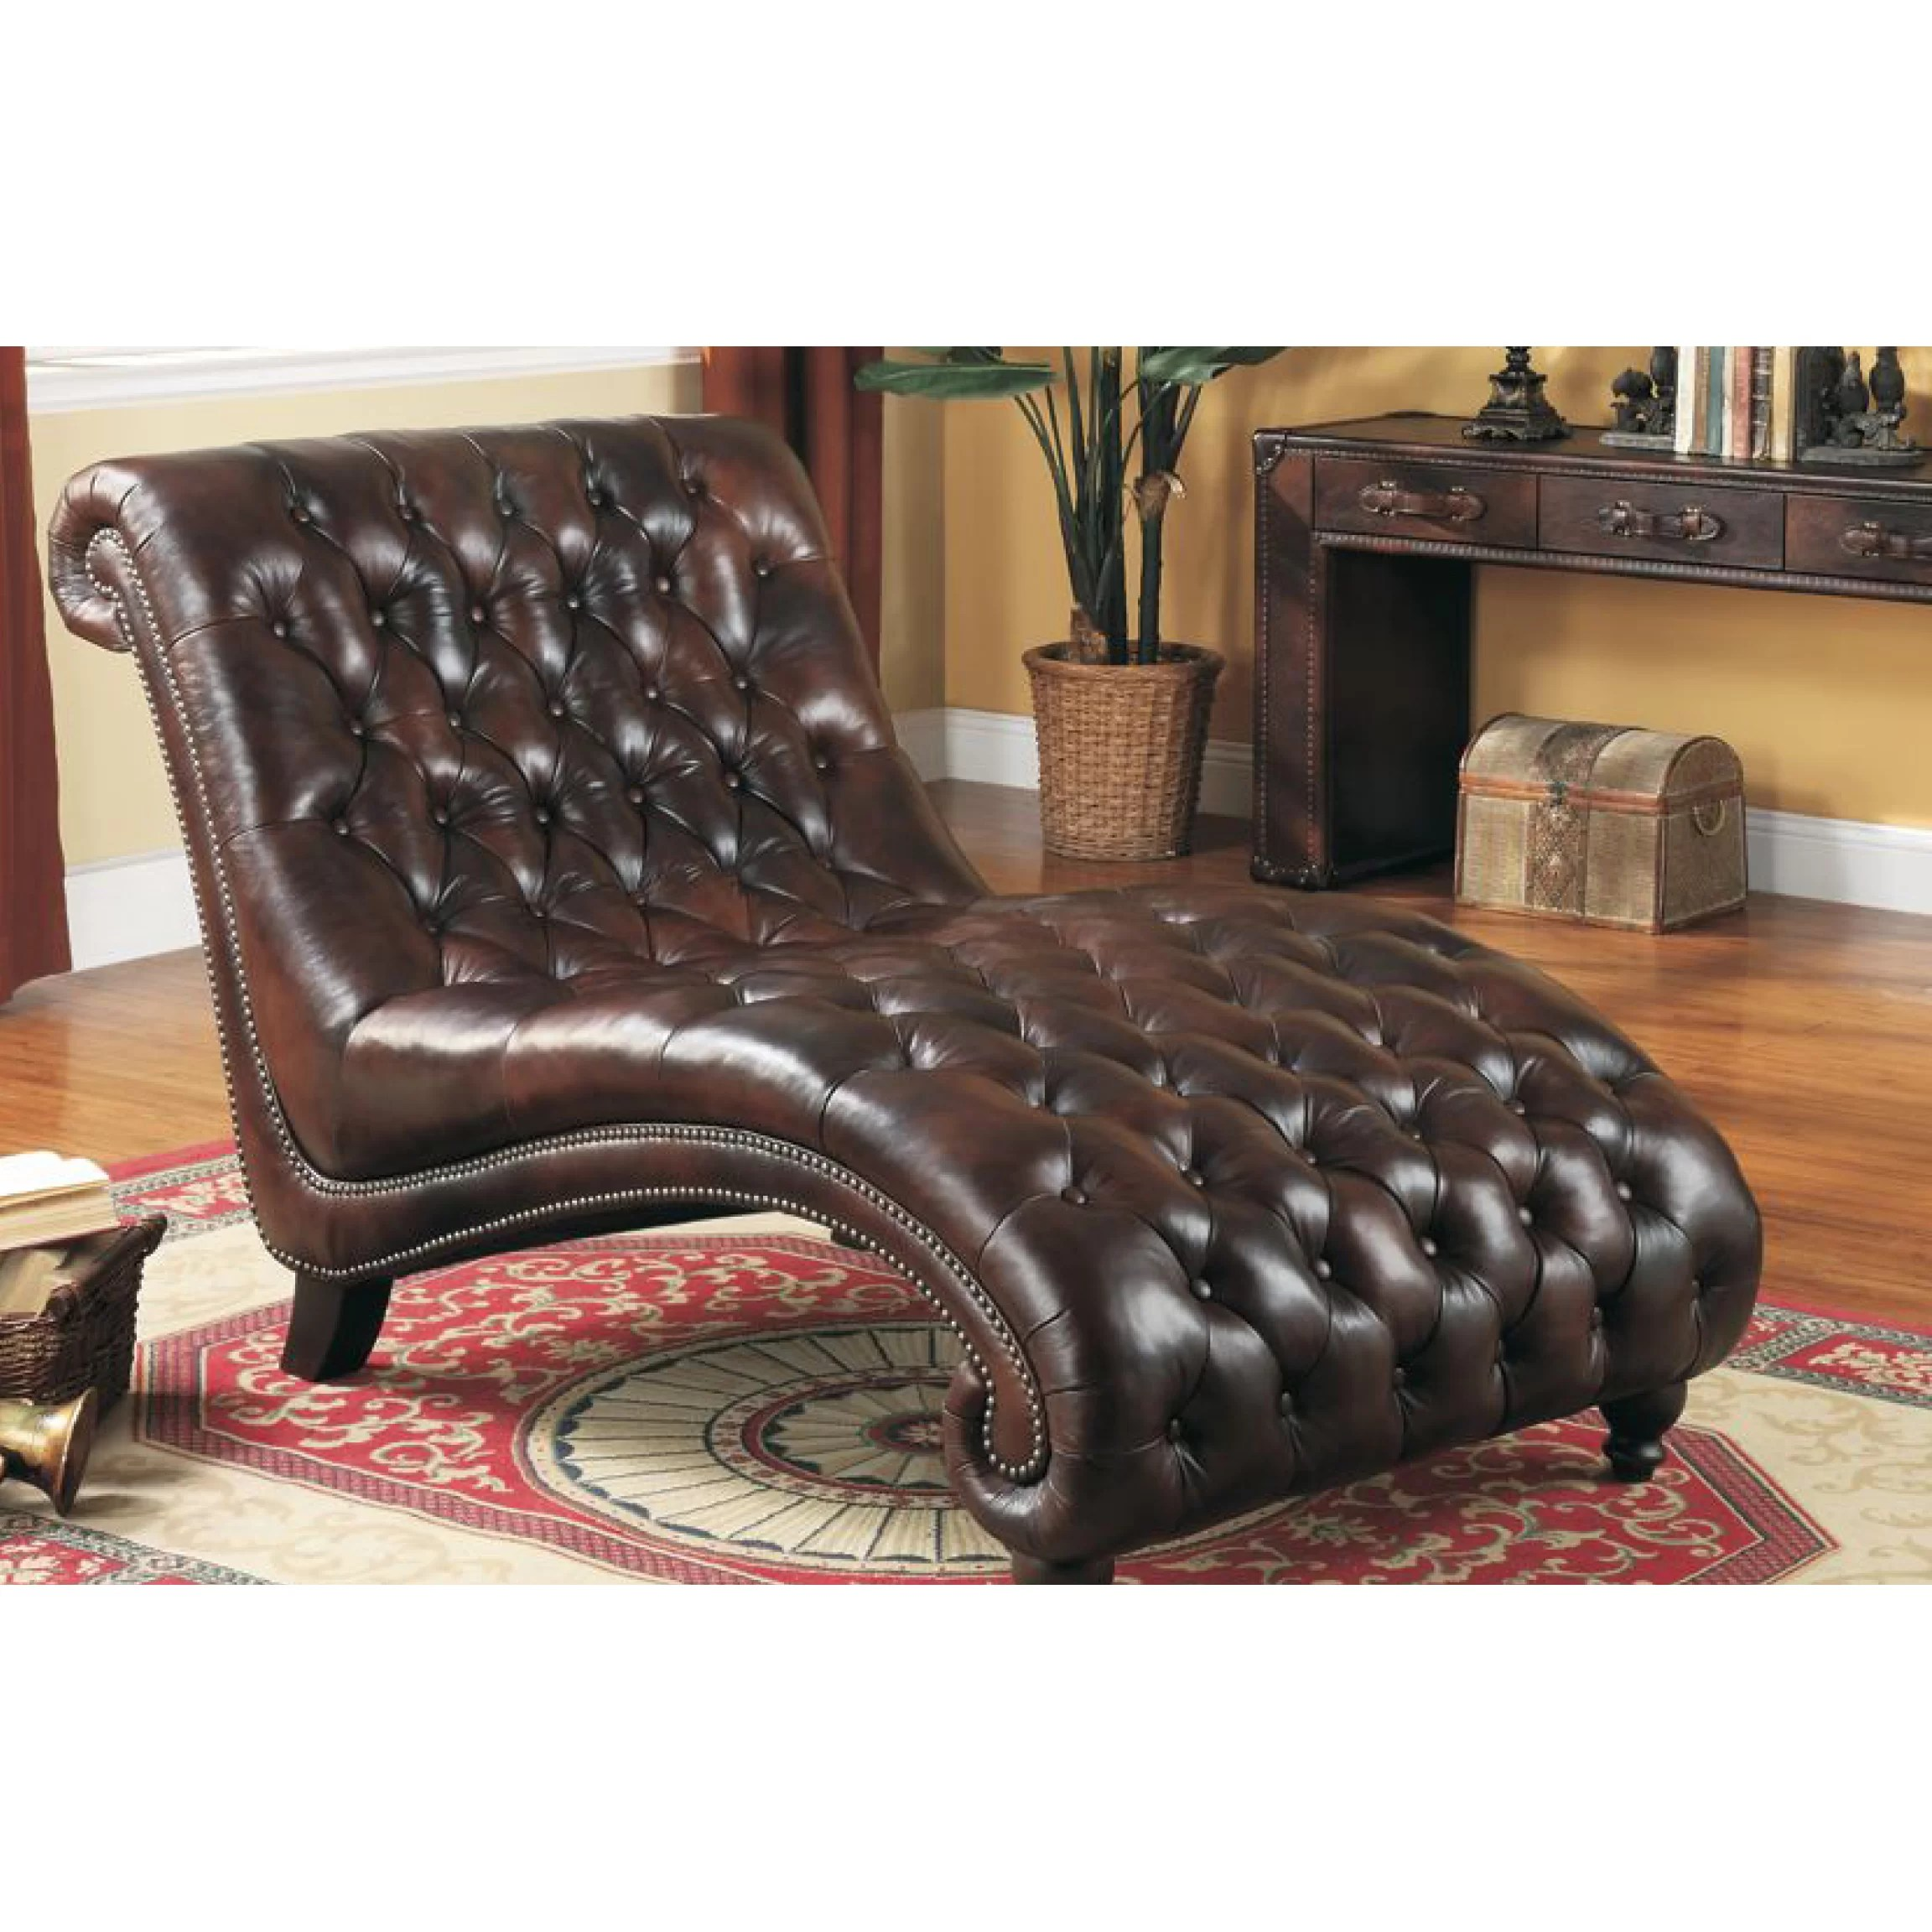 Leather Chaise Lounge Chair Lazzaro Leather Chaise Lounge And Reviews Wayfair